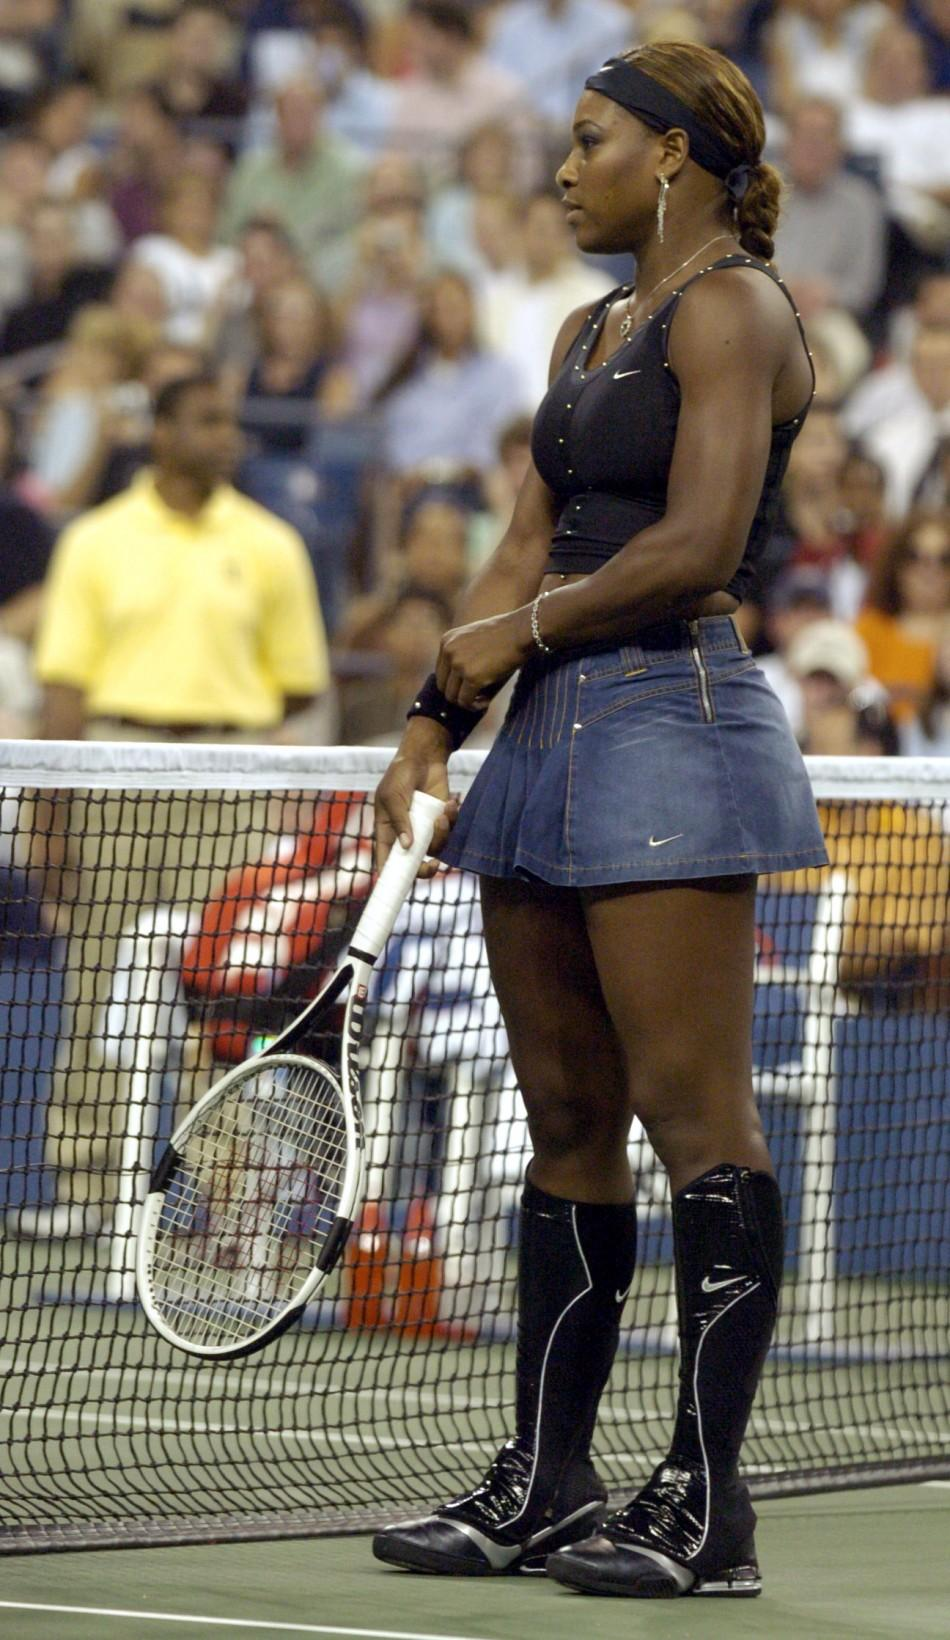 Pictures Top 10 Outrageous Tennis Outfits Of All Time